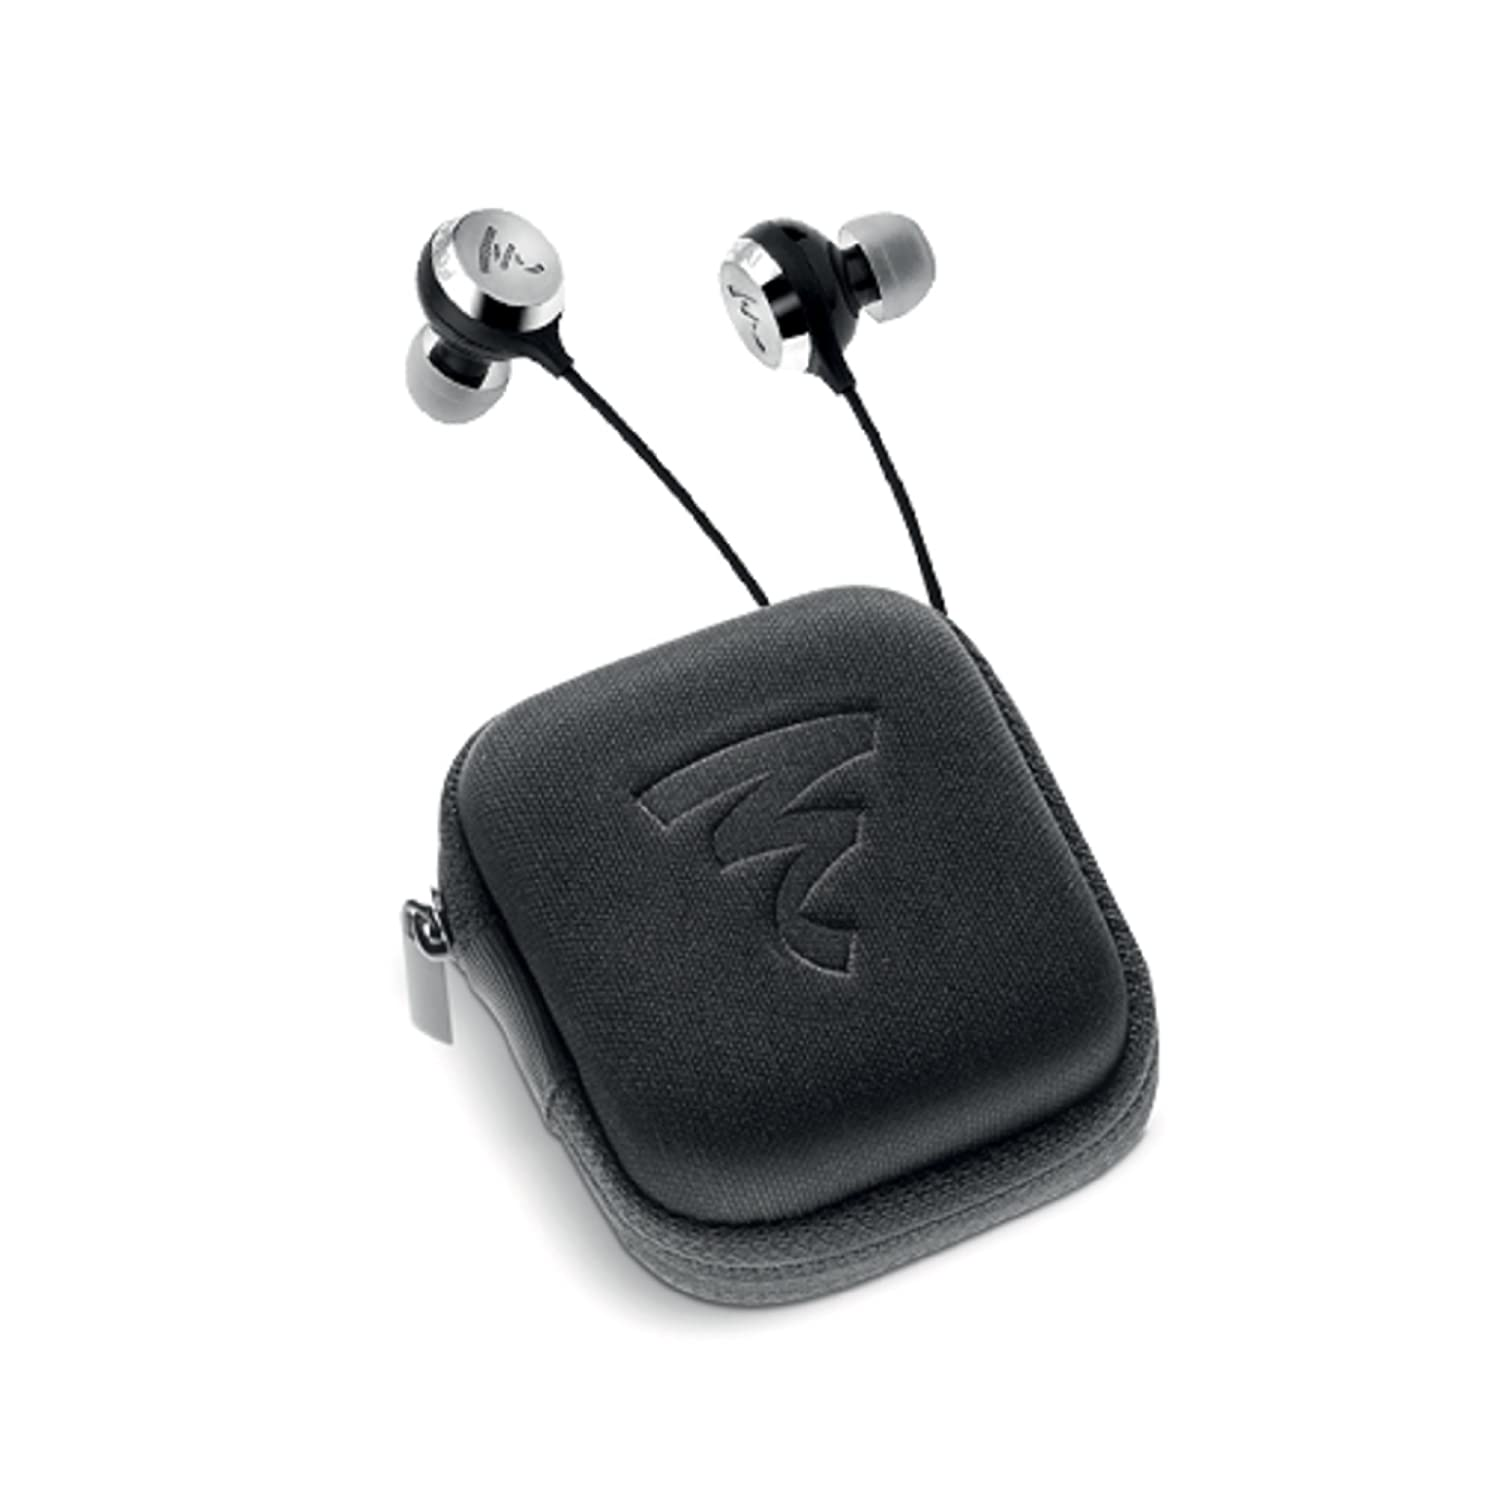 Earbud Replacement Tips for Focal Sphear High-Resolution In-Ear Headphones